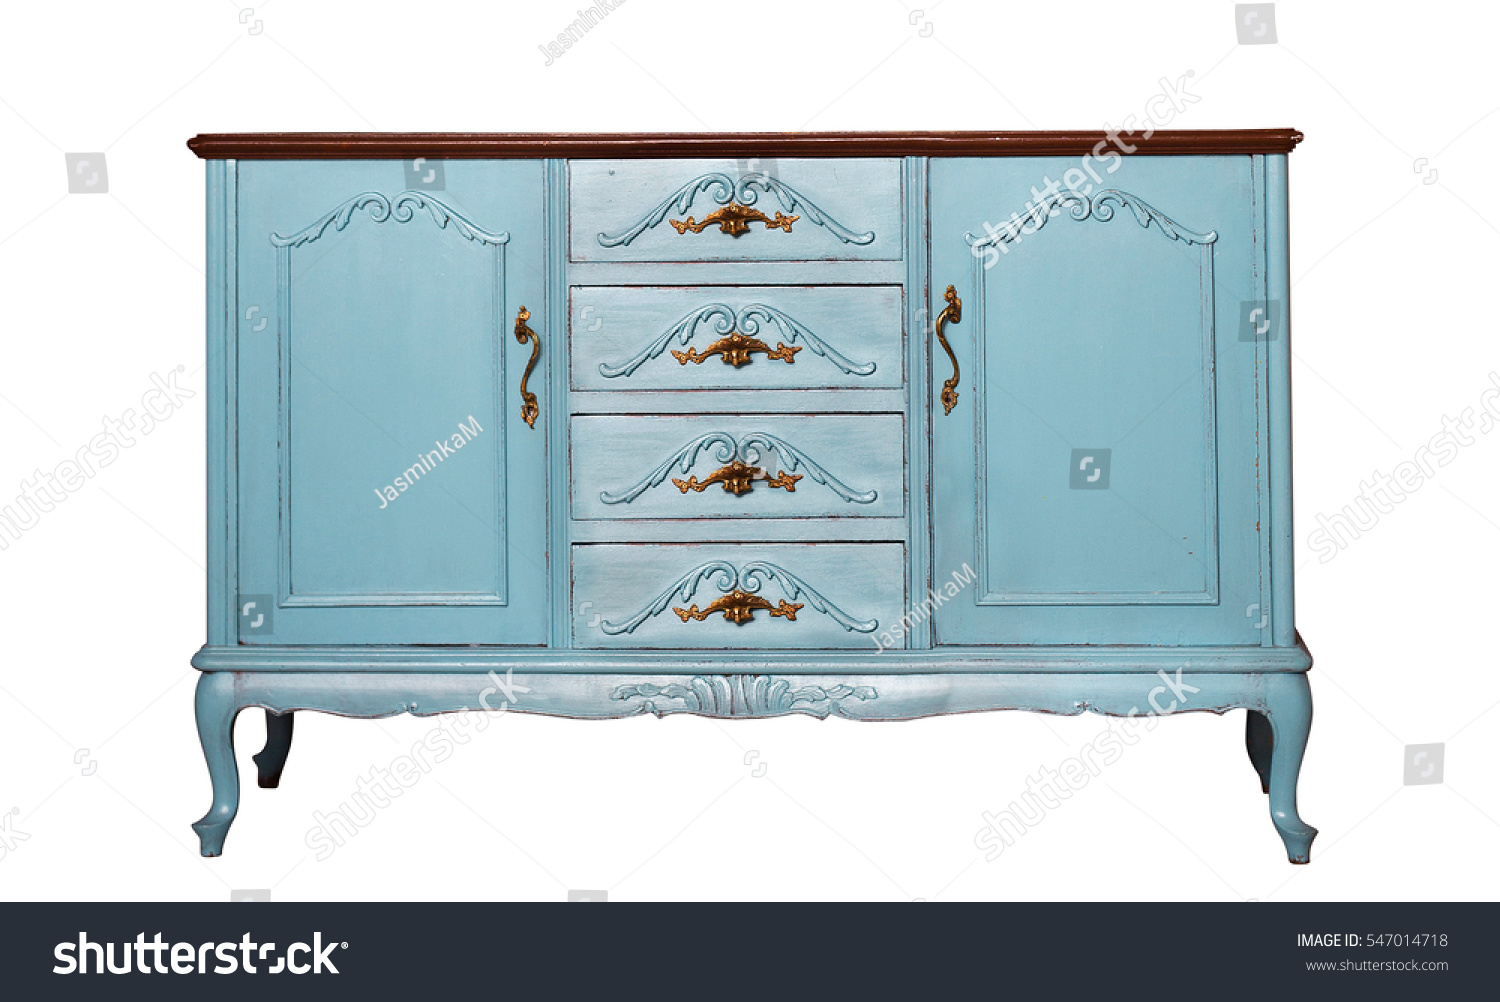 Vintage blue wooden dresser isolated on stock photo for Clothes dresser